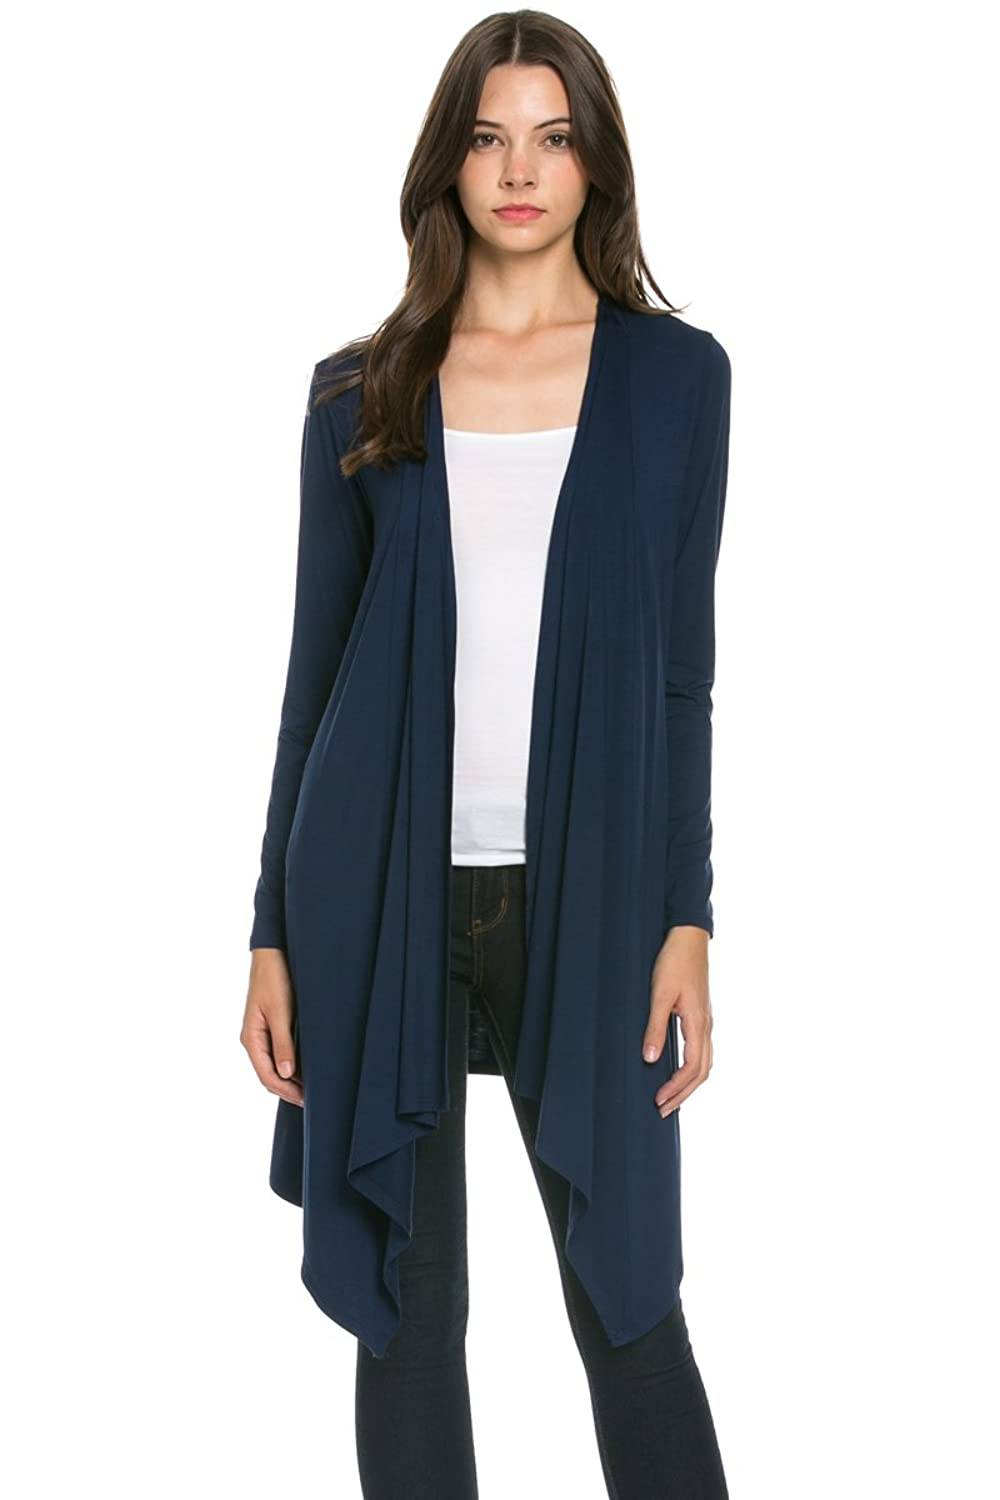 My Yuccie Women's Long Sleeve Open Front Draped Knit Cardigan